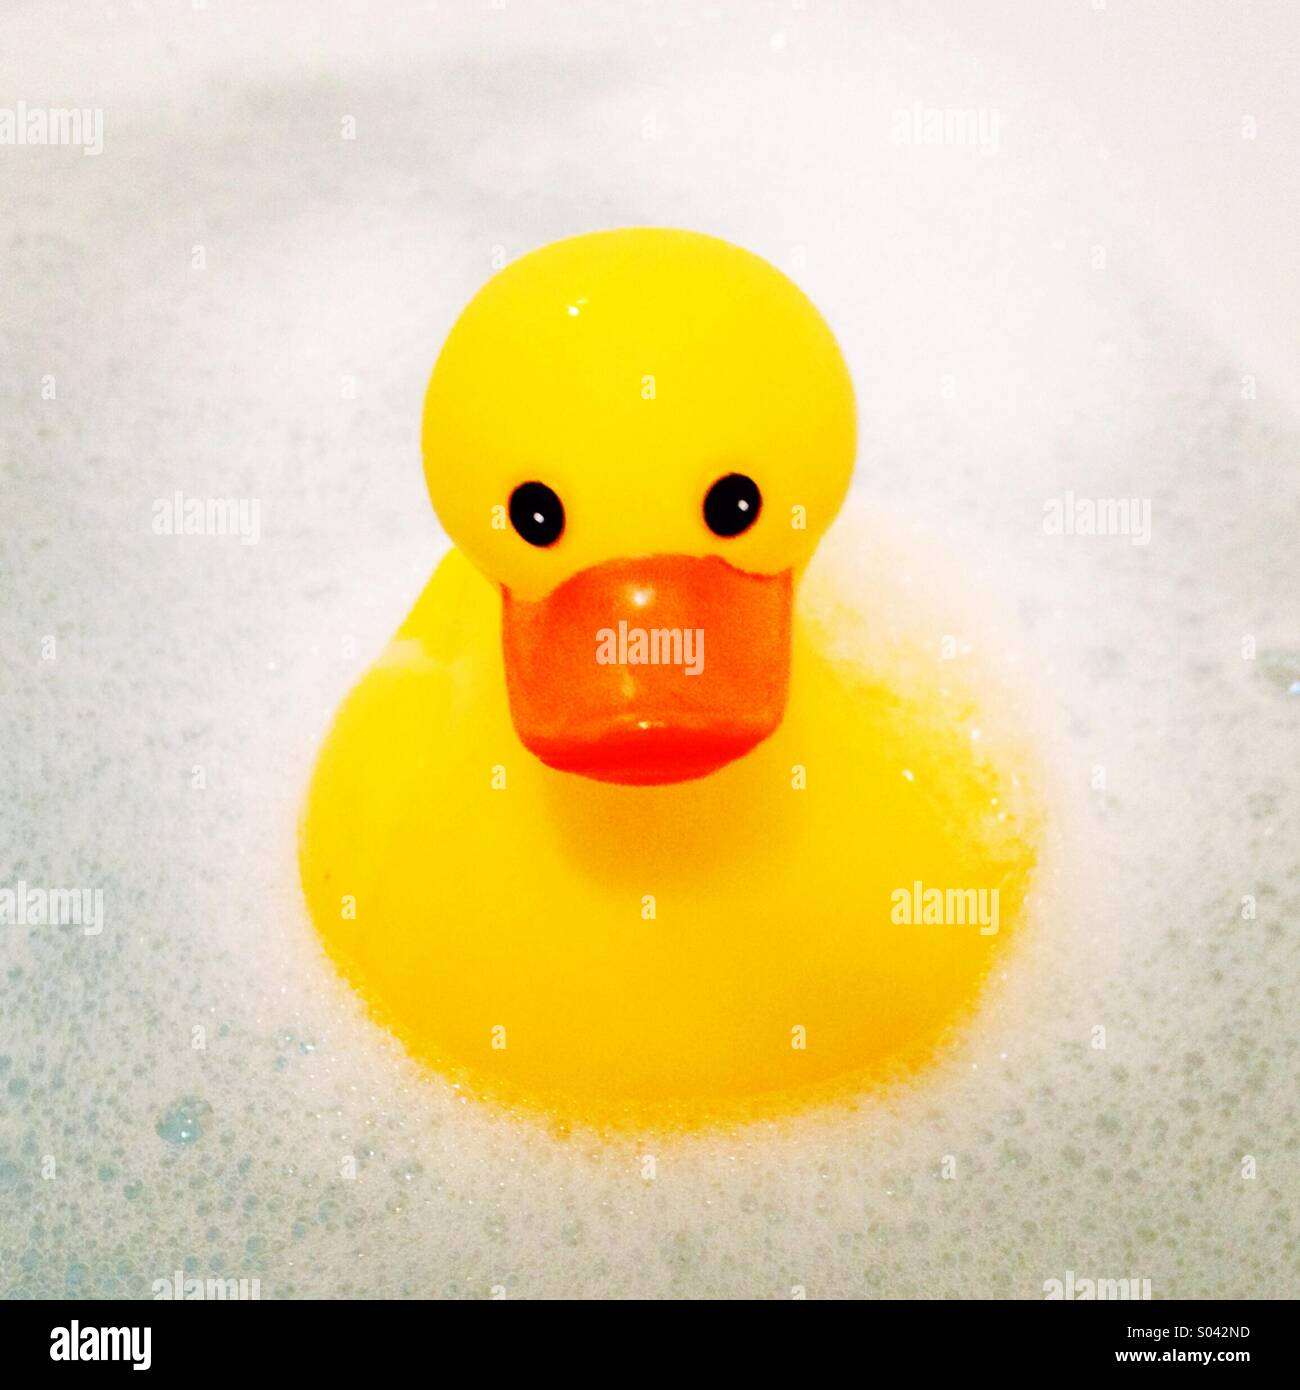 Rubber duck in suds - Stock Image